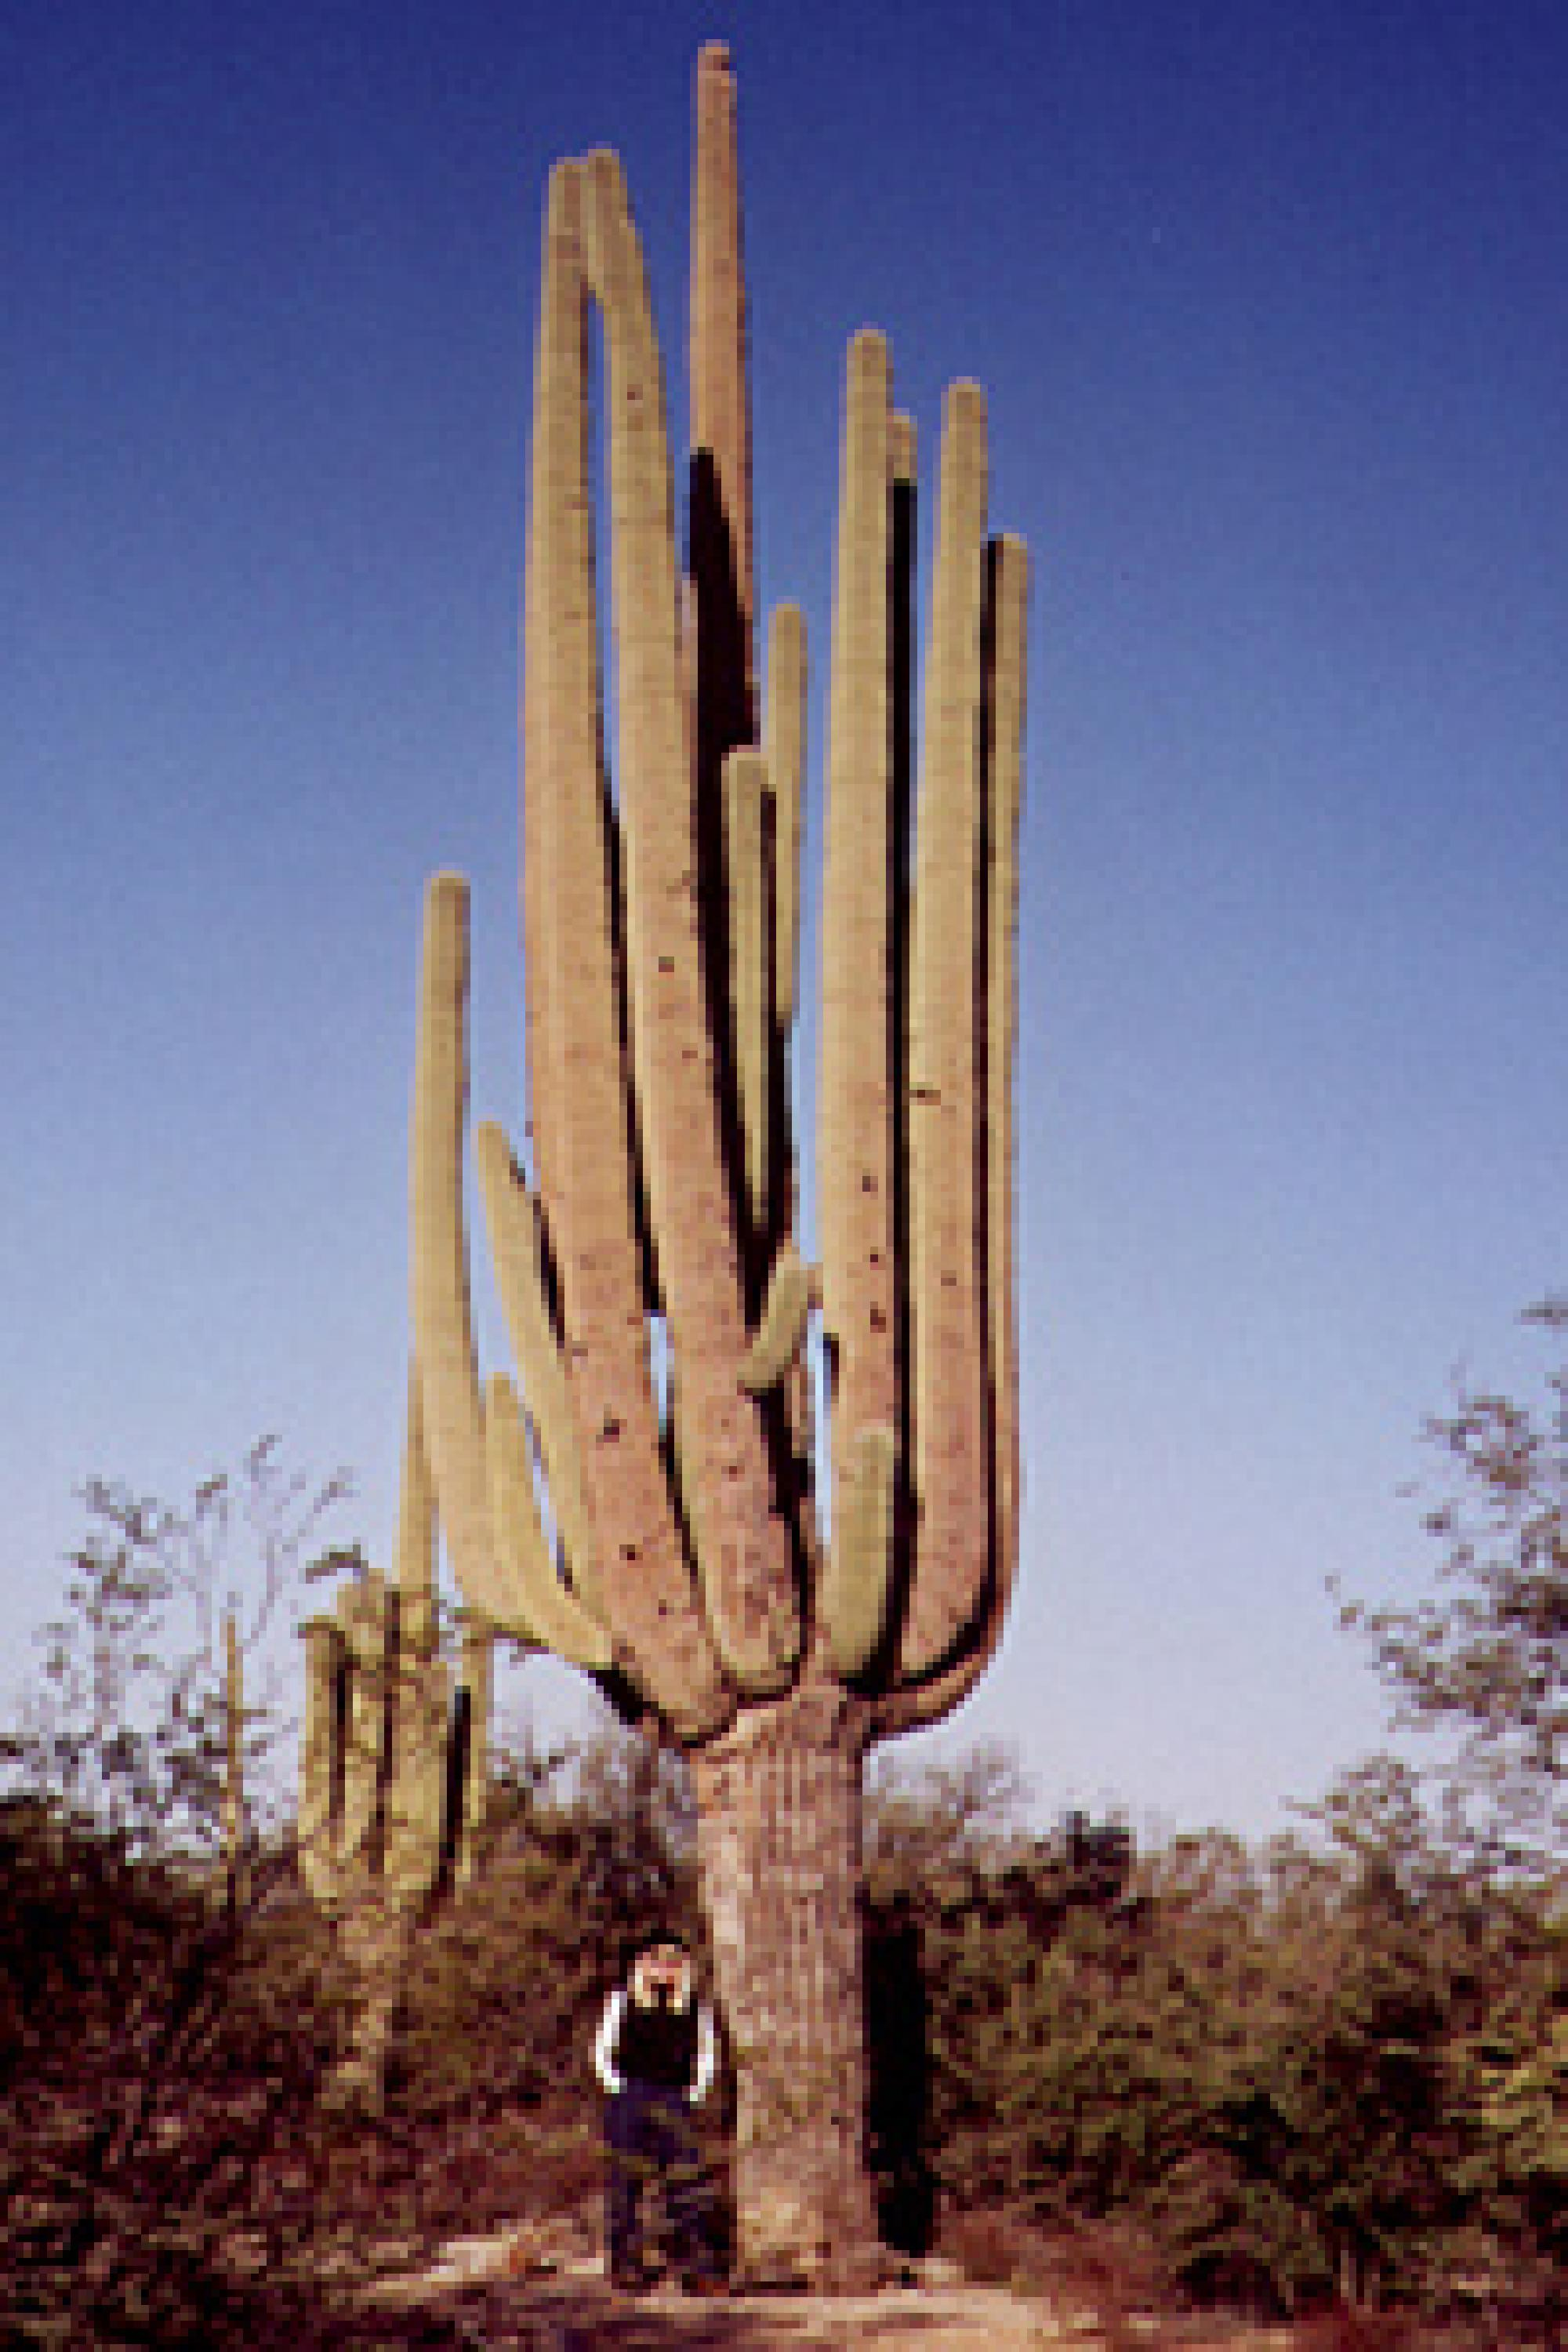 One of the giant saguaros near the Loma Verde Trail in Saguaro National Park East